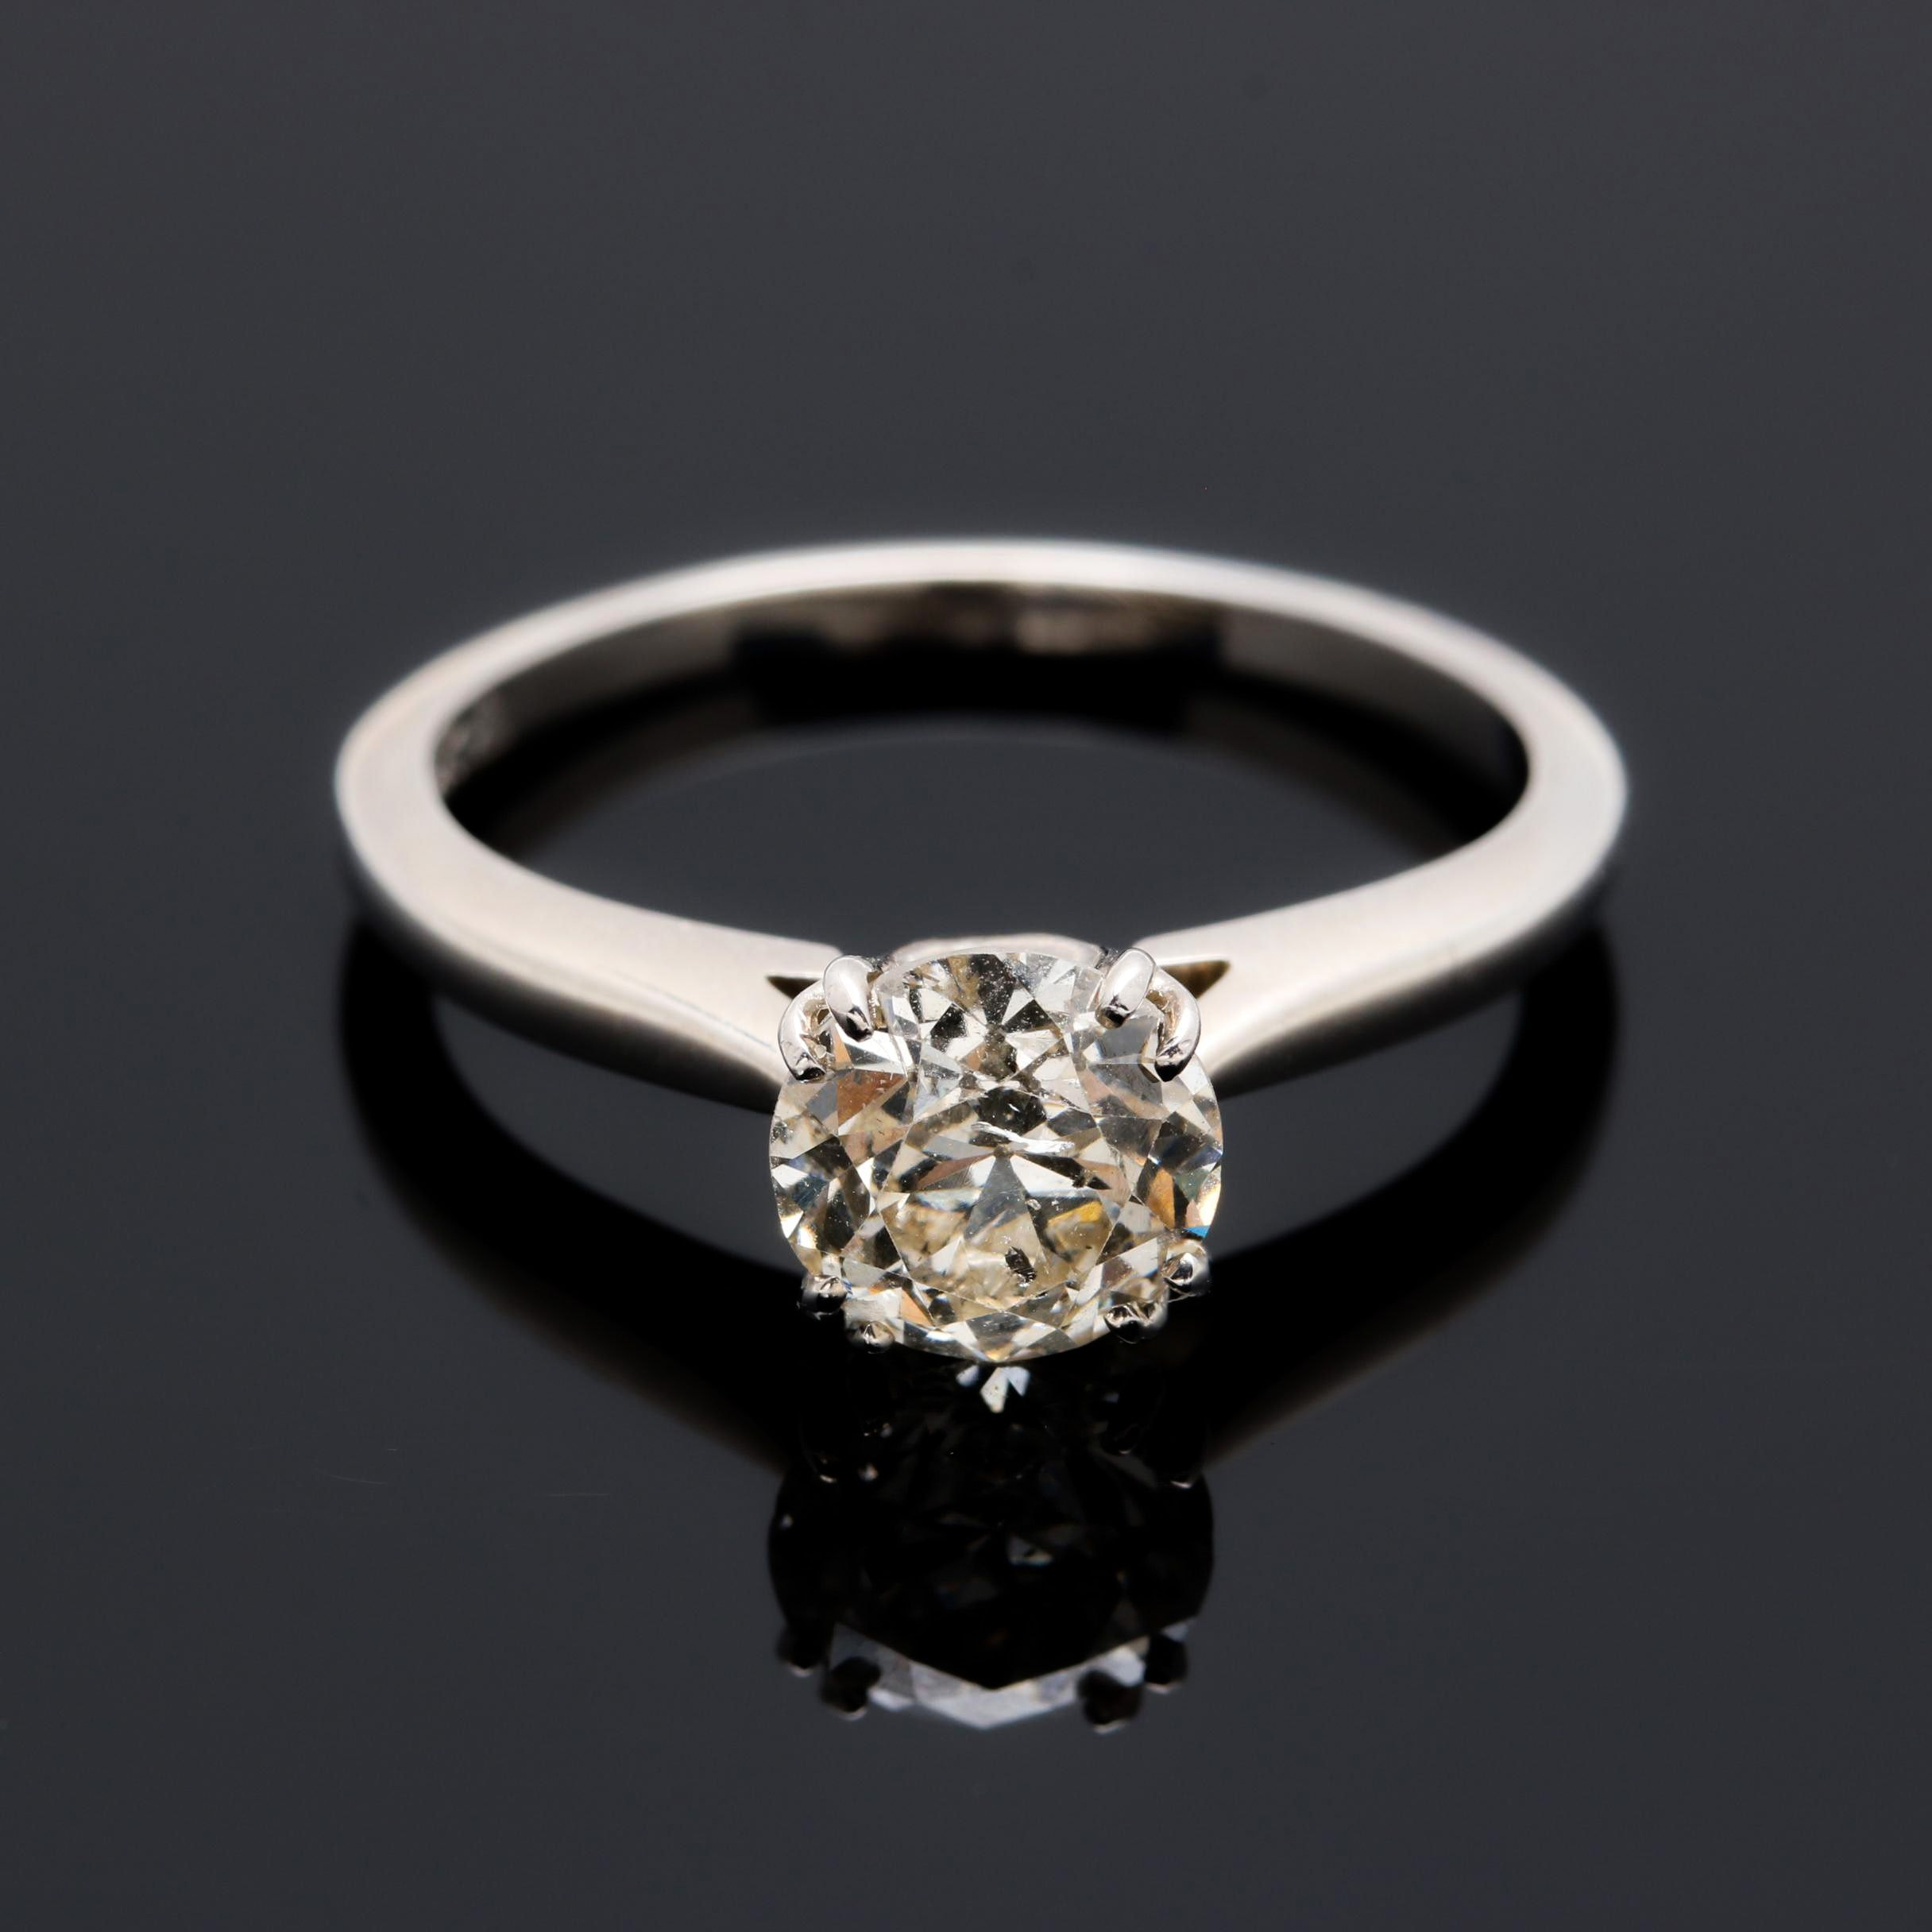 14K White Gold 1.28 CT Diamond Solitaire Ring